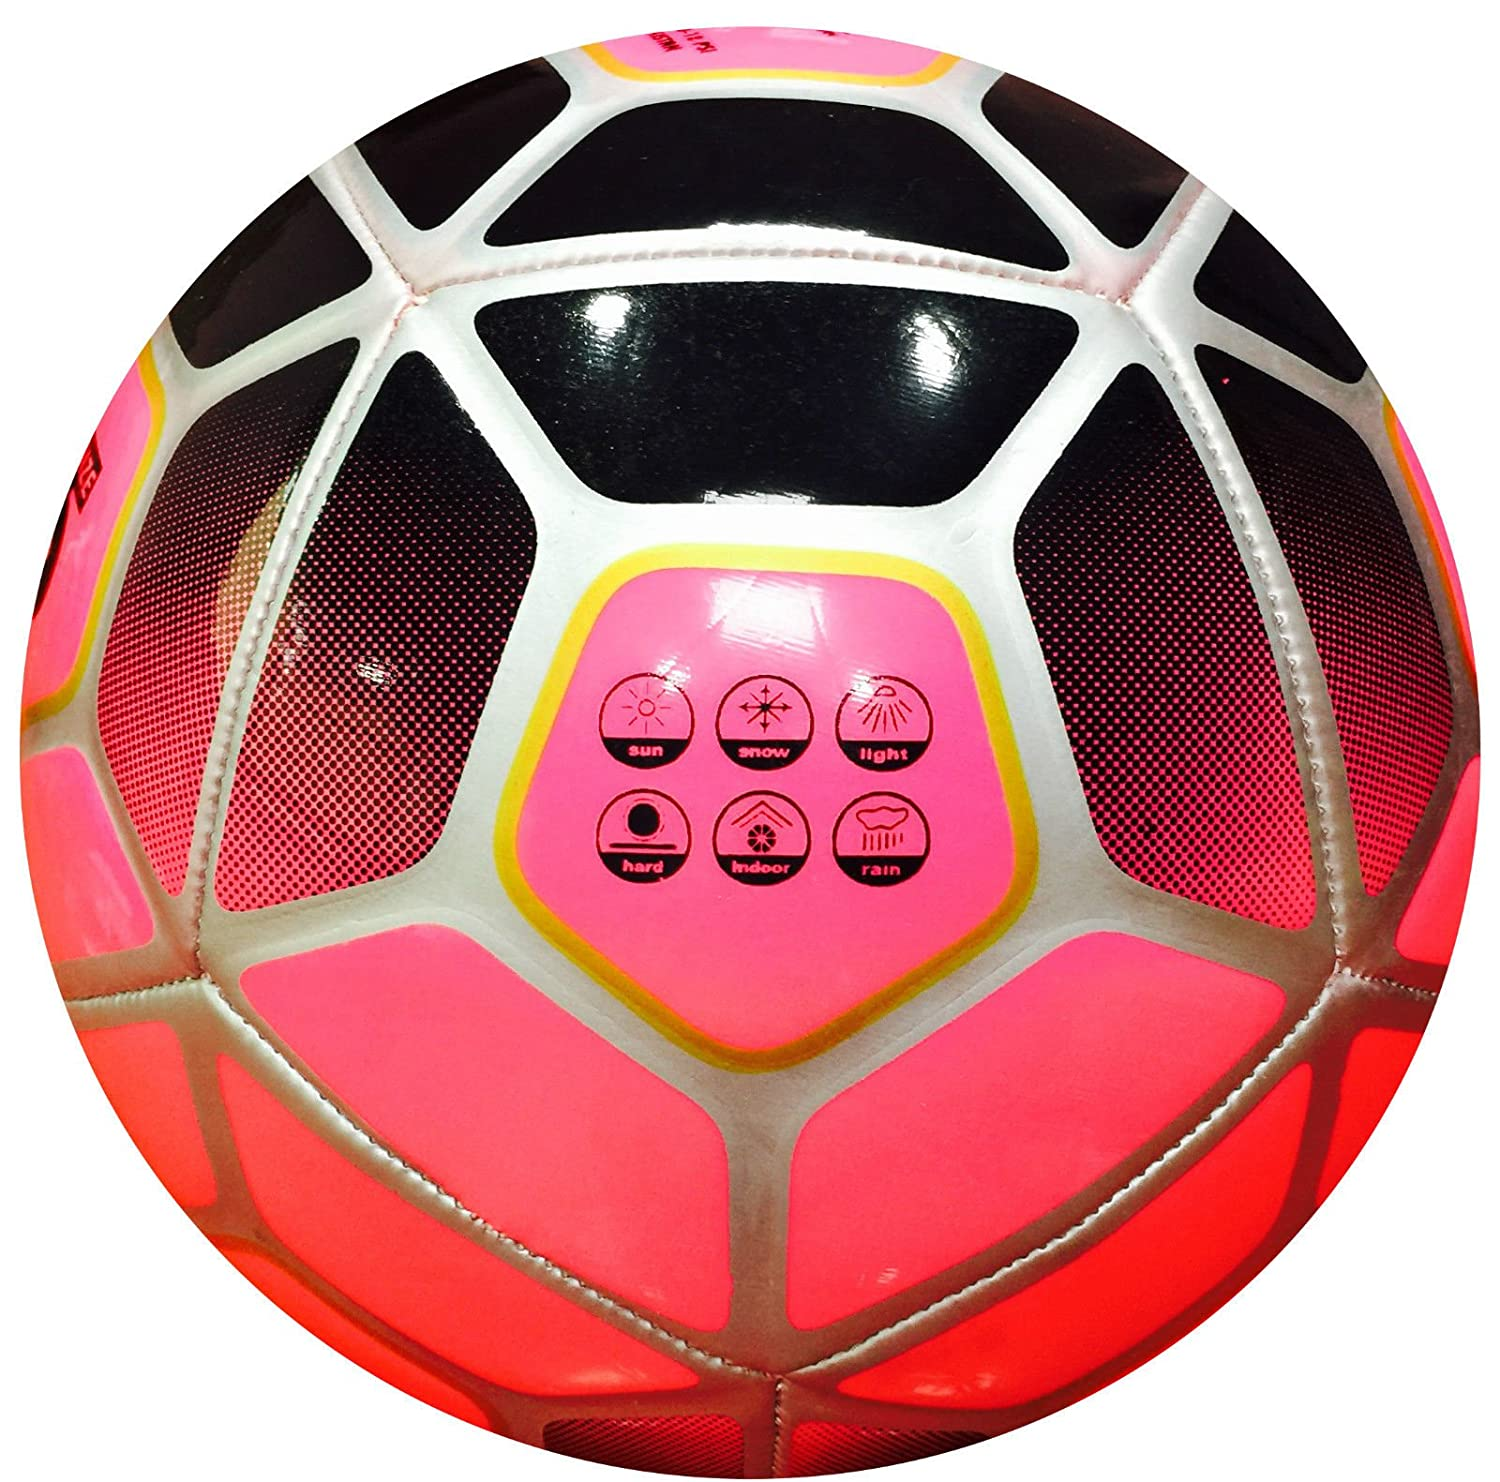 Spedster Premier League 2018-2019 - Balón de fútbol, color rosa, 5 ...